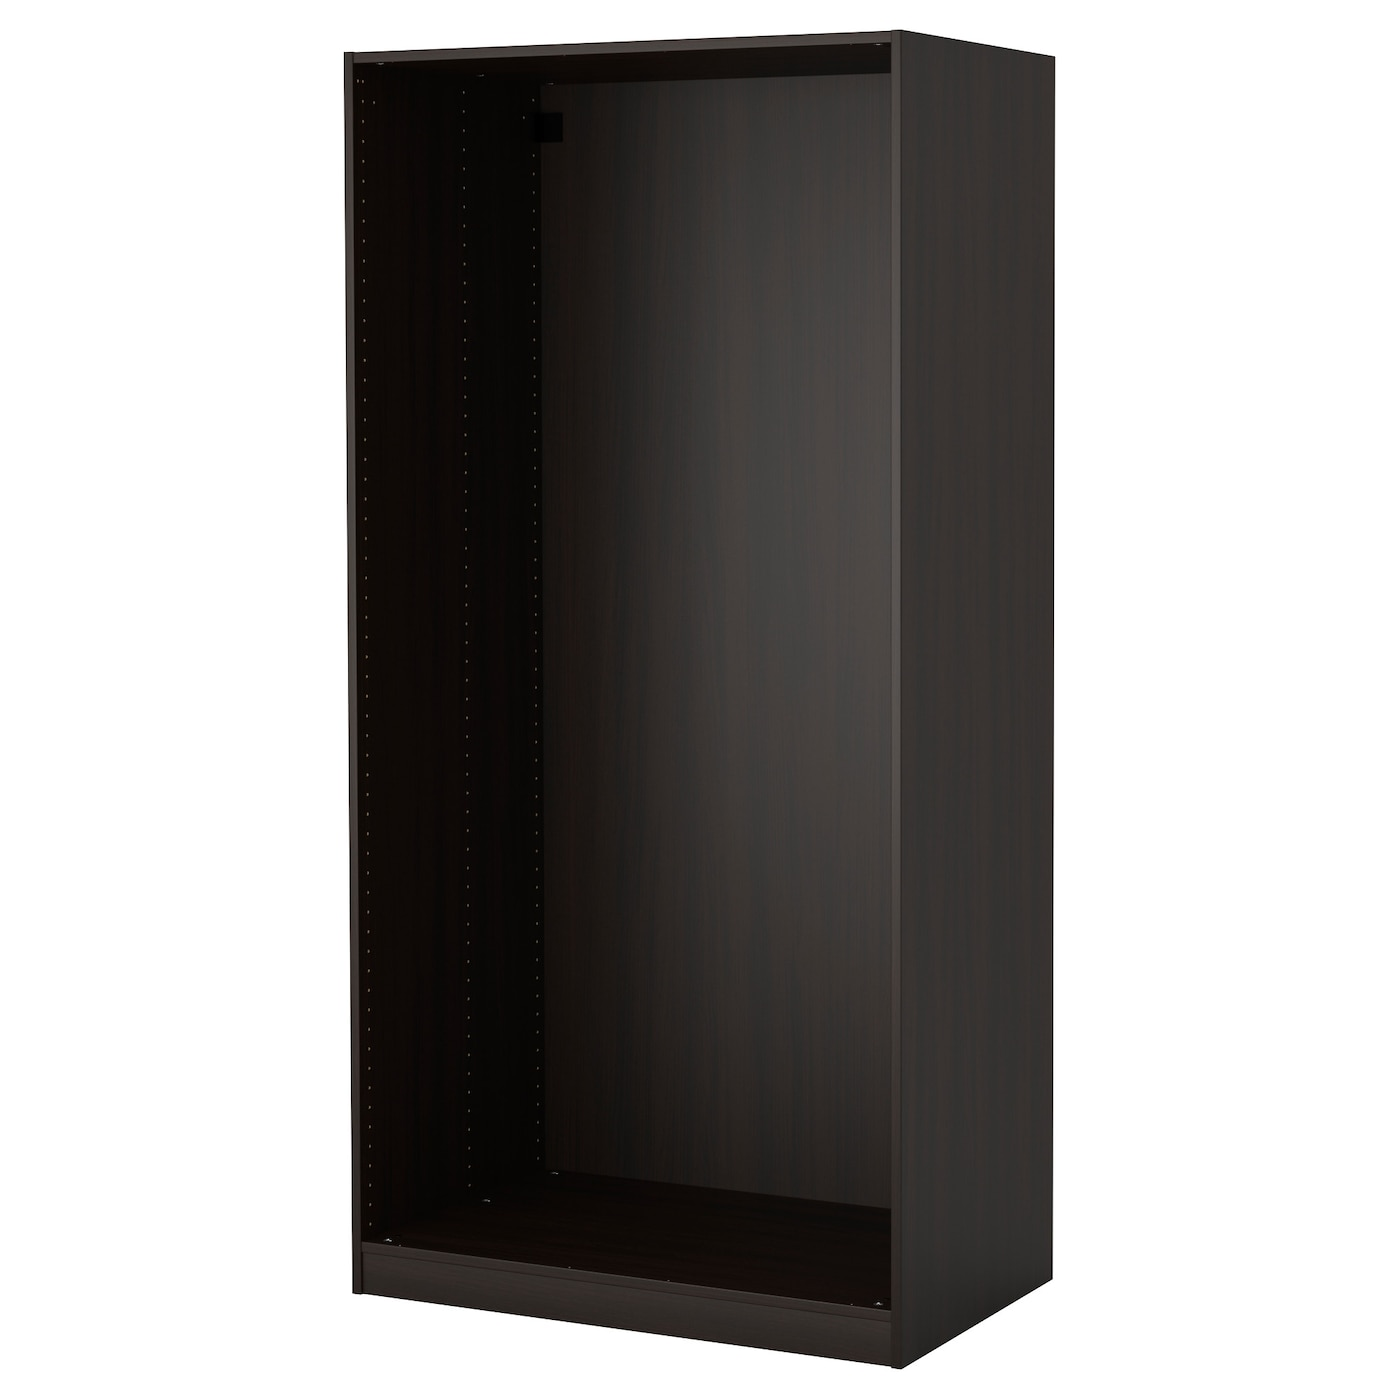 pax wardrobe frame black brown 100 x 58 x 201 cm ikea. Black Bedroom Furniture Sets. Home Design Ideas